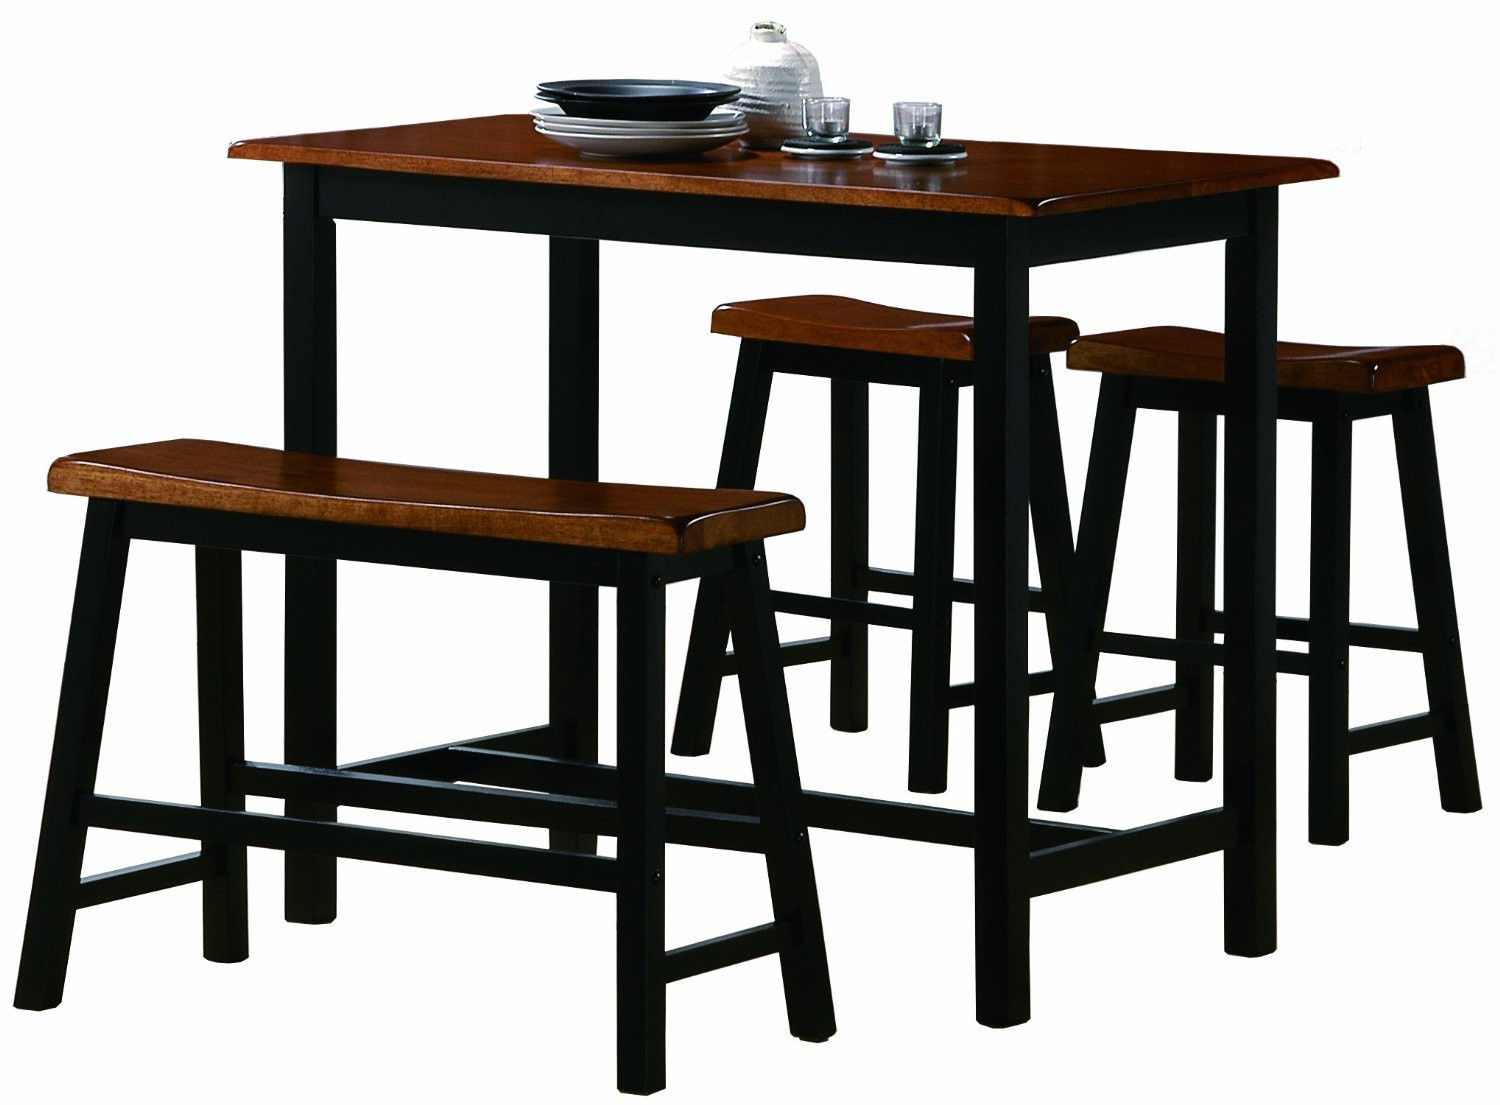 Counter Height 4 PC Table Set 2 Tone Cognac & Black, Kitchen Nook Table, Stools